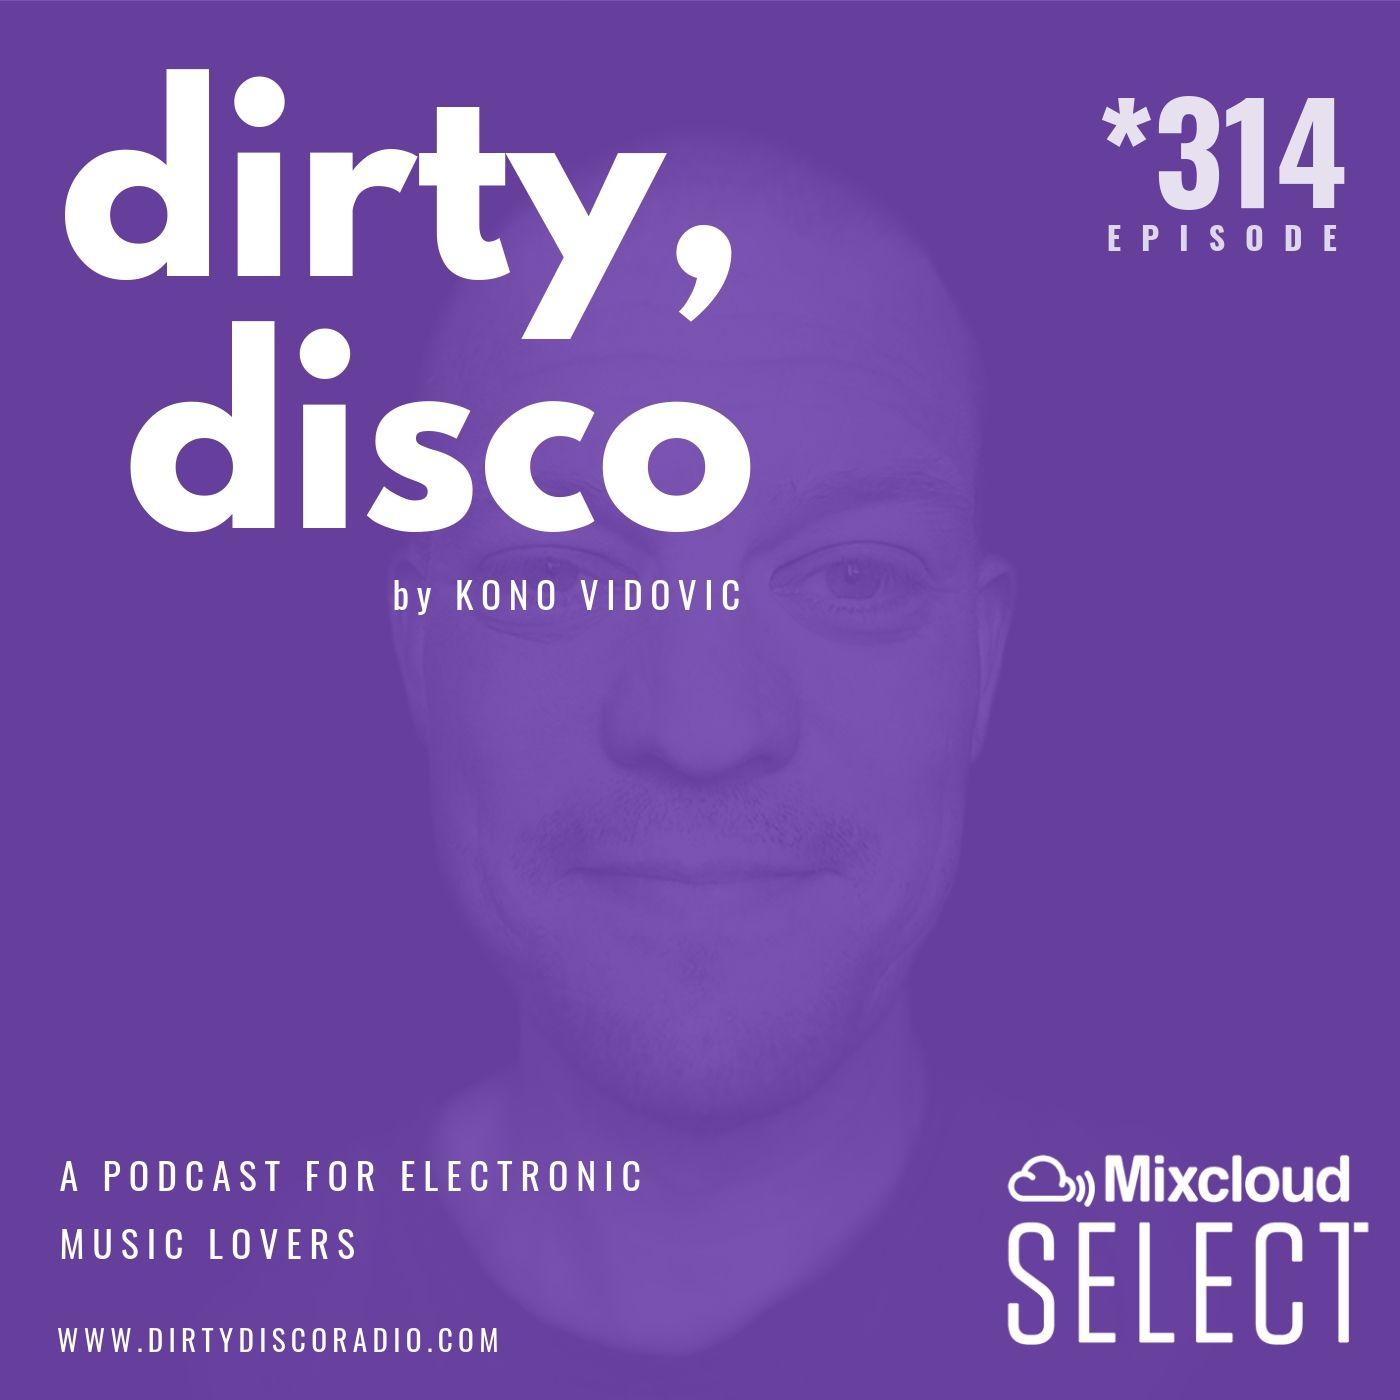 Dirty Disco available in Spotify podcasts